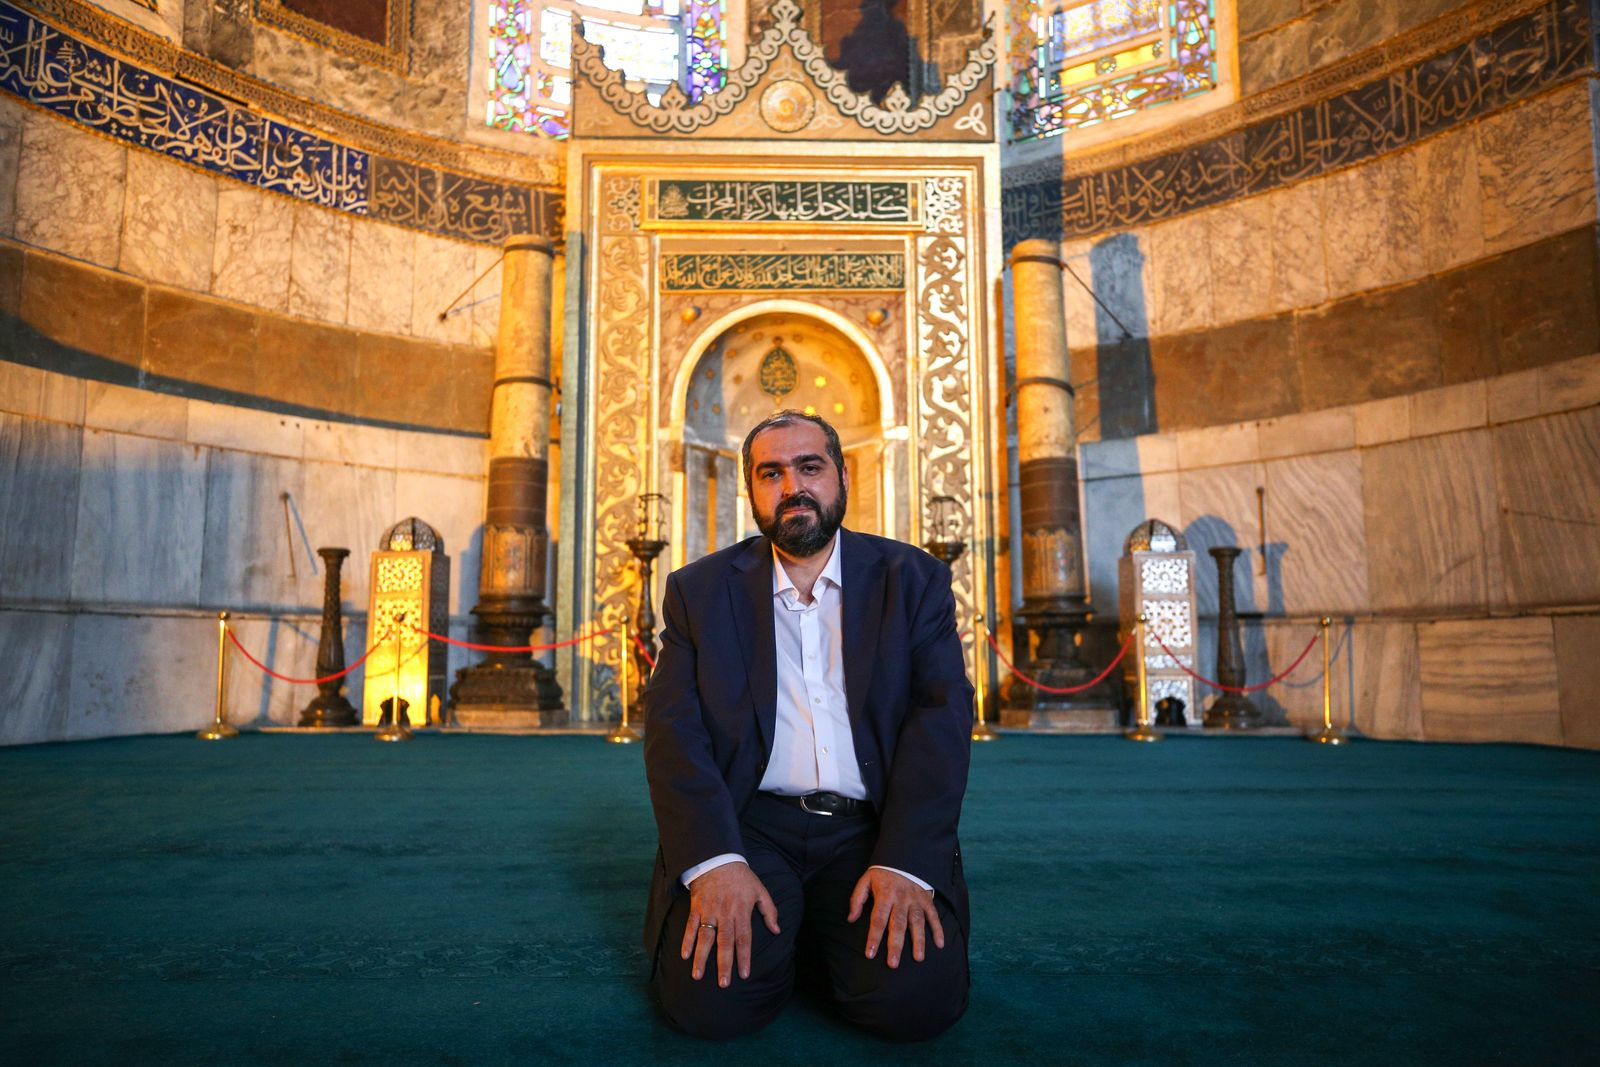 Newly appointed religious officials of Hagia Sophia Grand Mosque